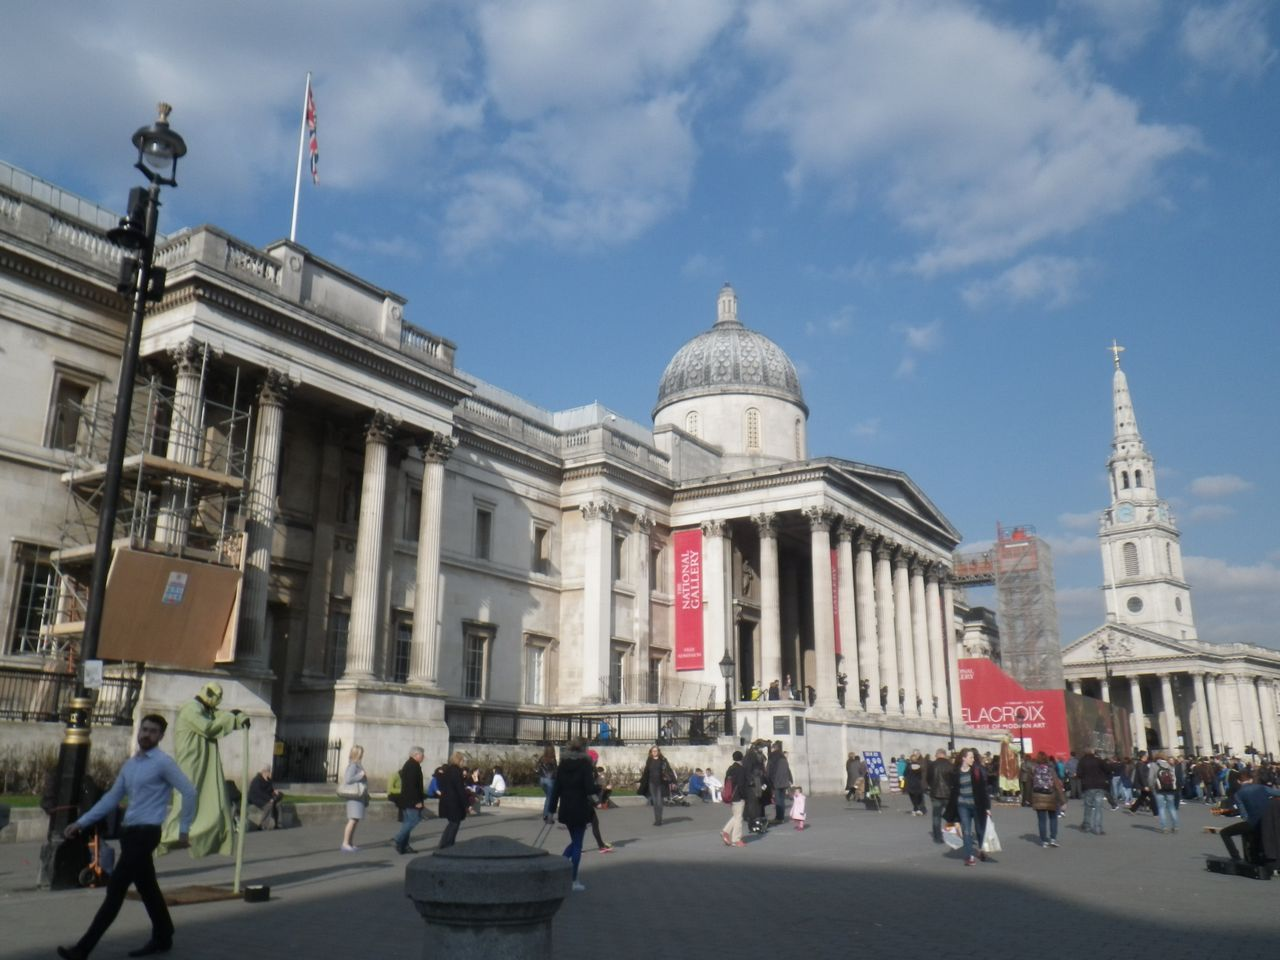 Where to stay in London near the National Gallery